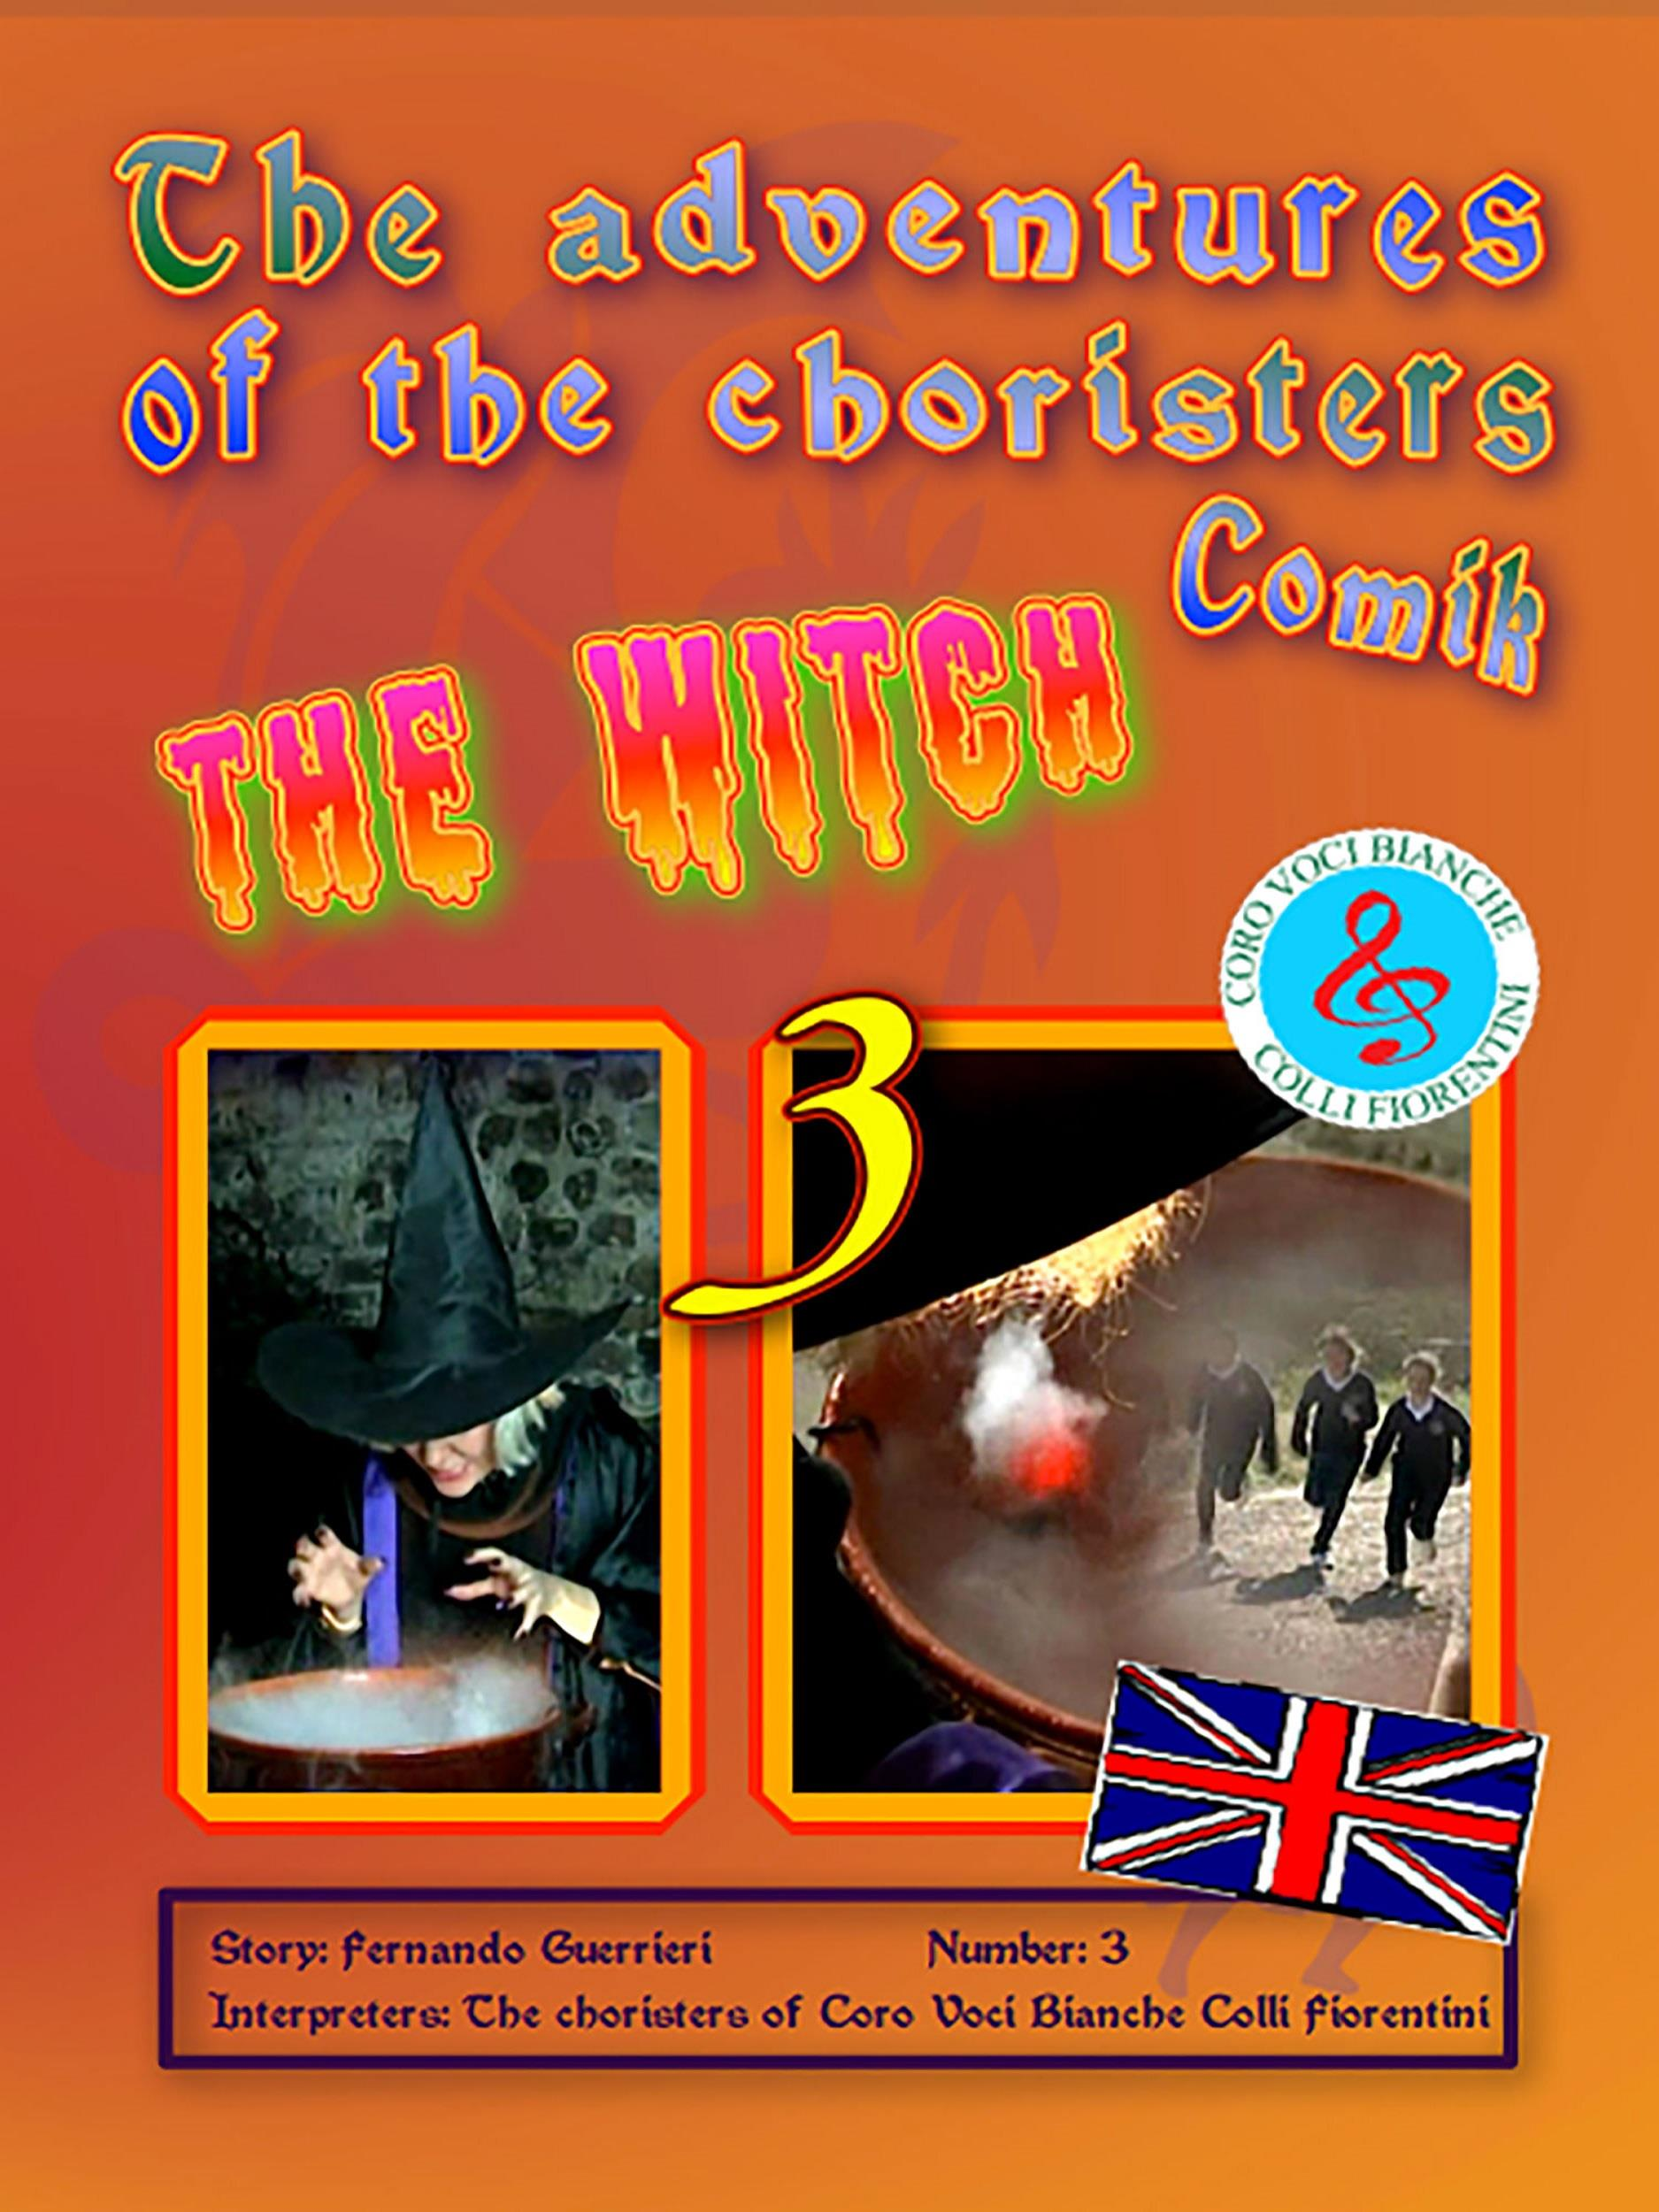 The adventures of the choristers 3 - The witch